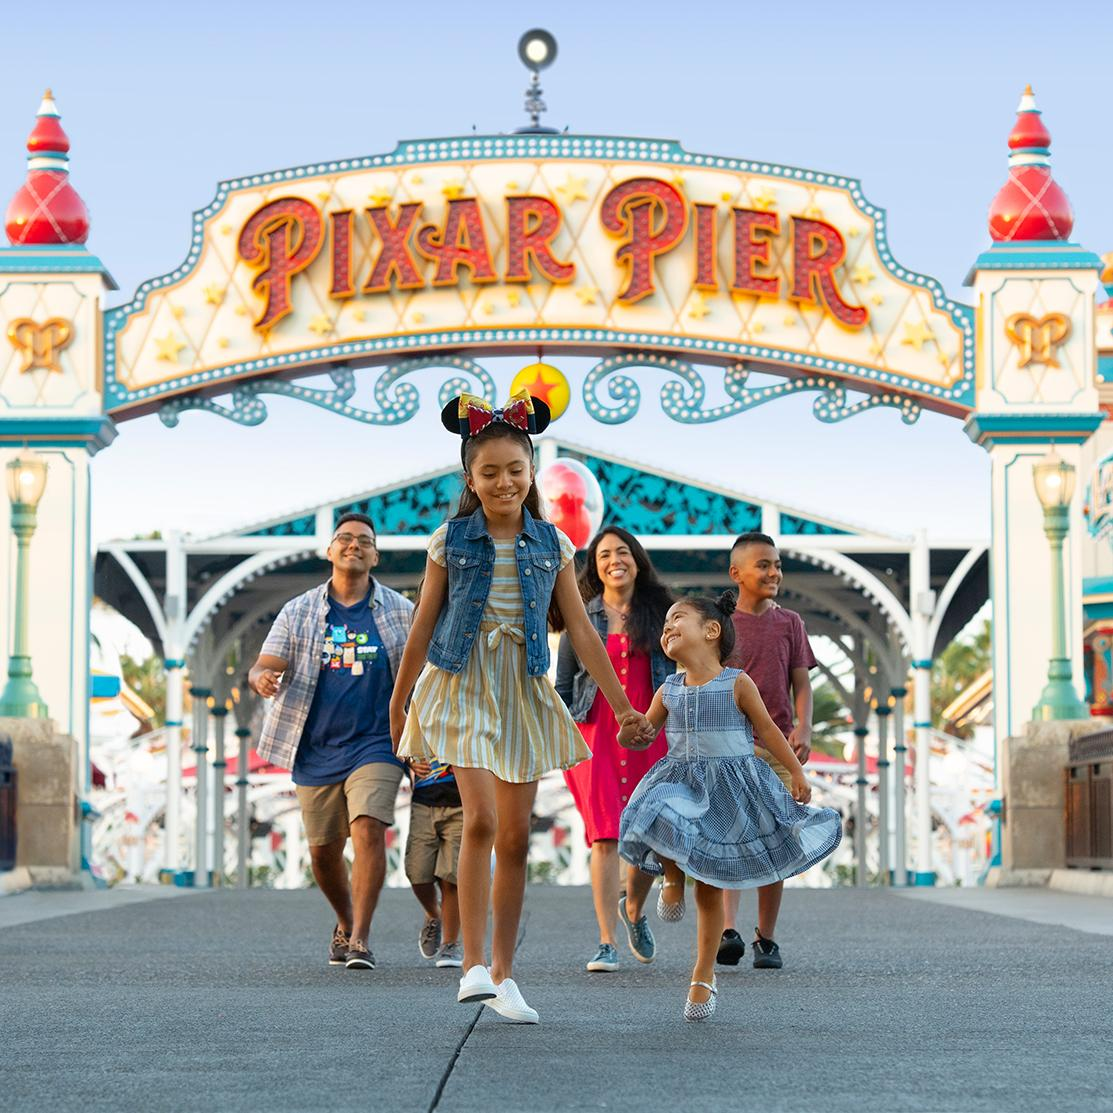 Stroll down the Pixar Pier with family at Disney's resorts